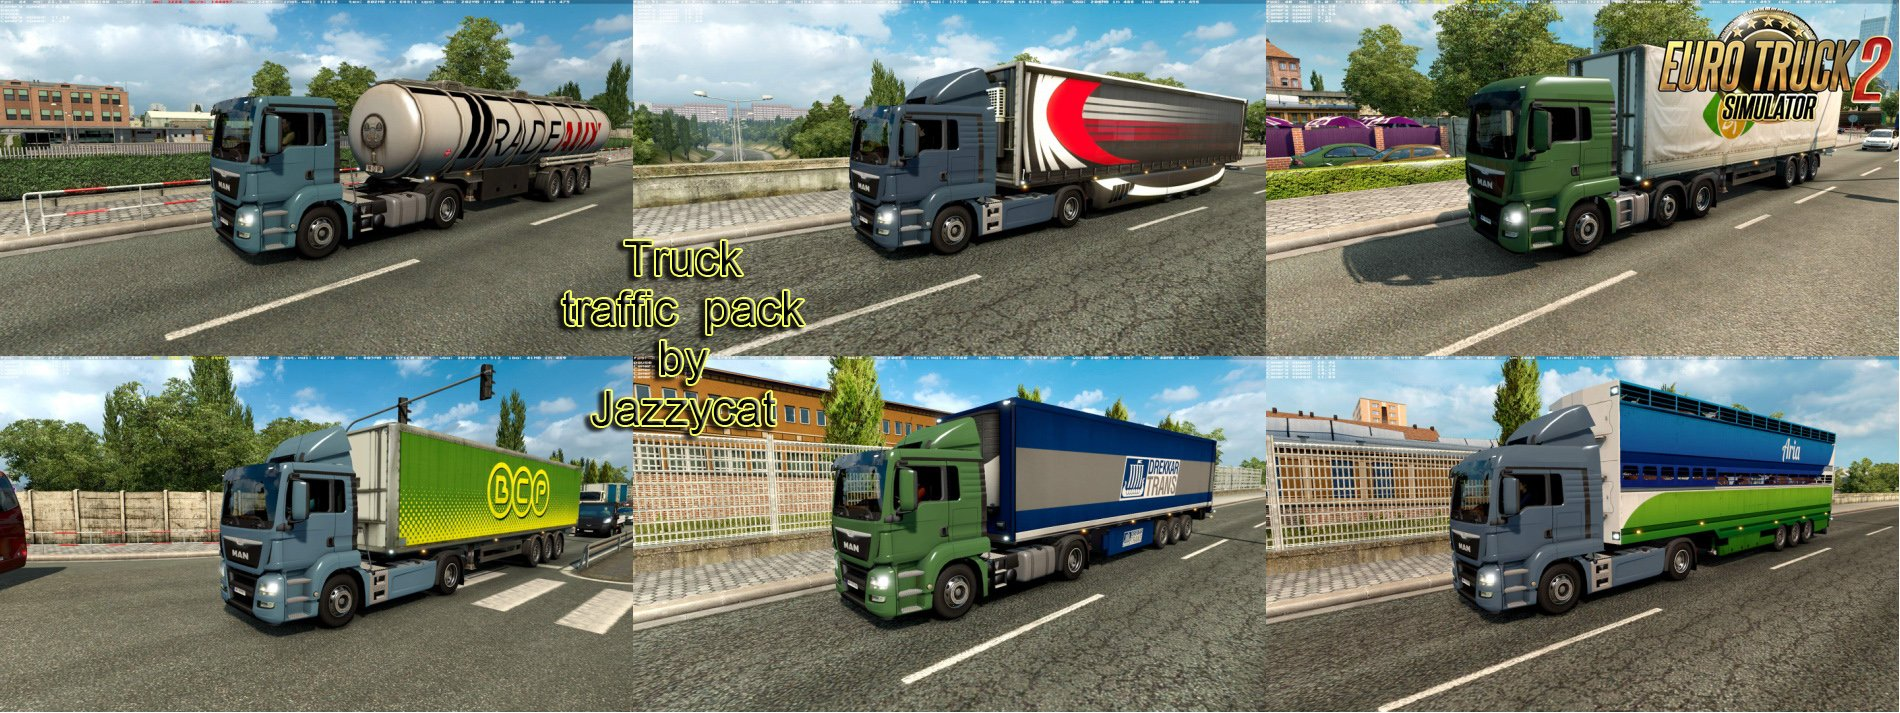 Truck Traffic Pack v2.8 by Jazzycat (1.28.x)